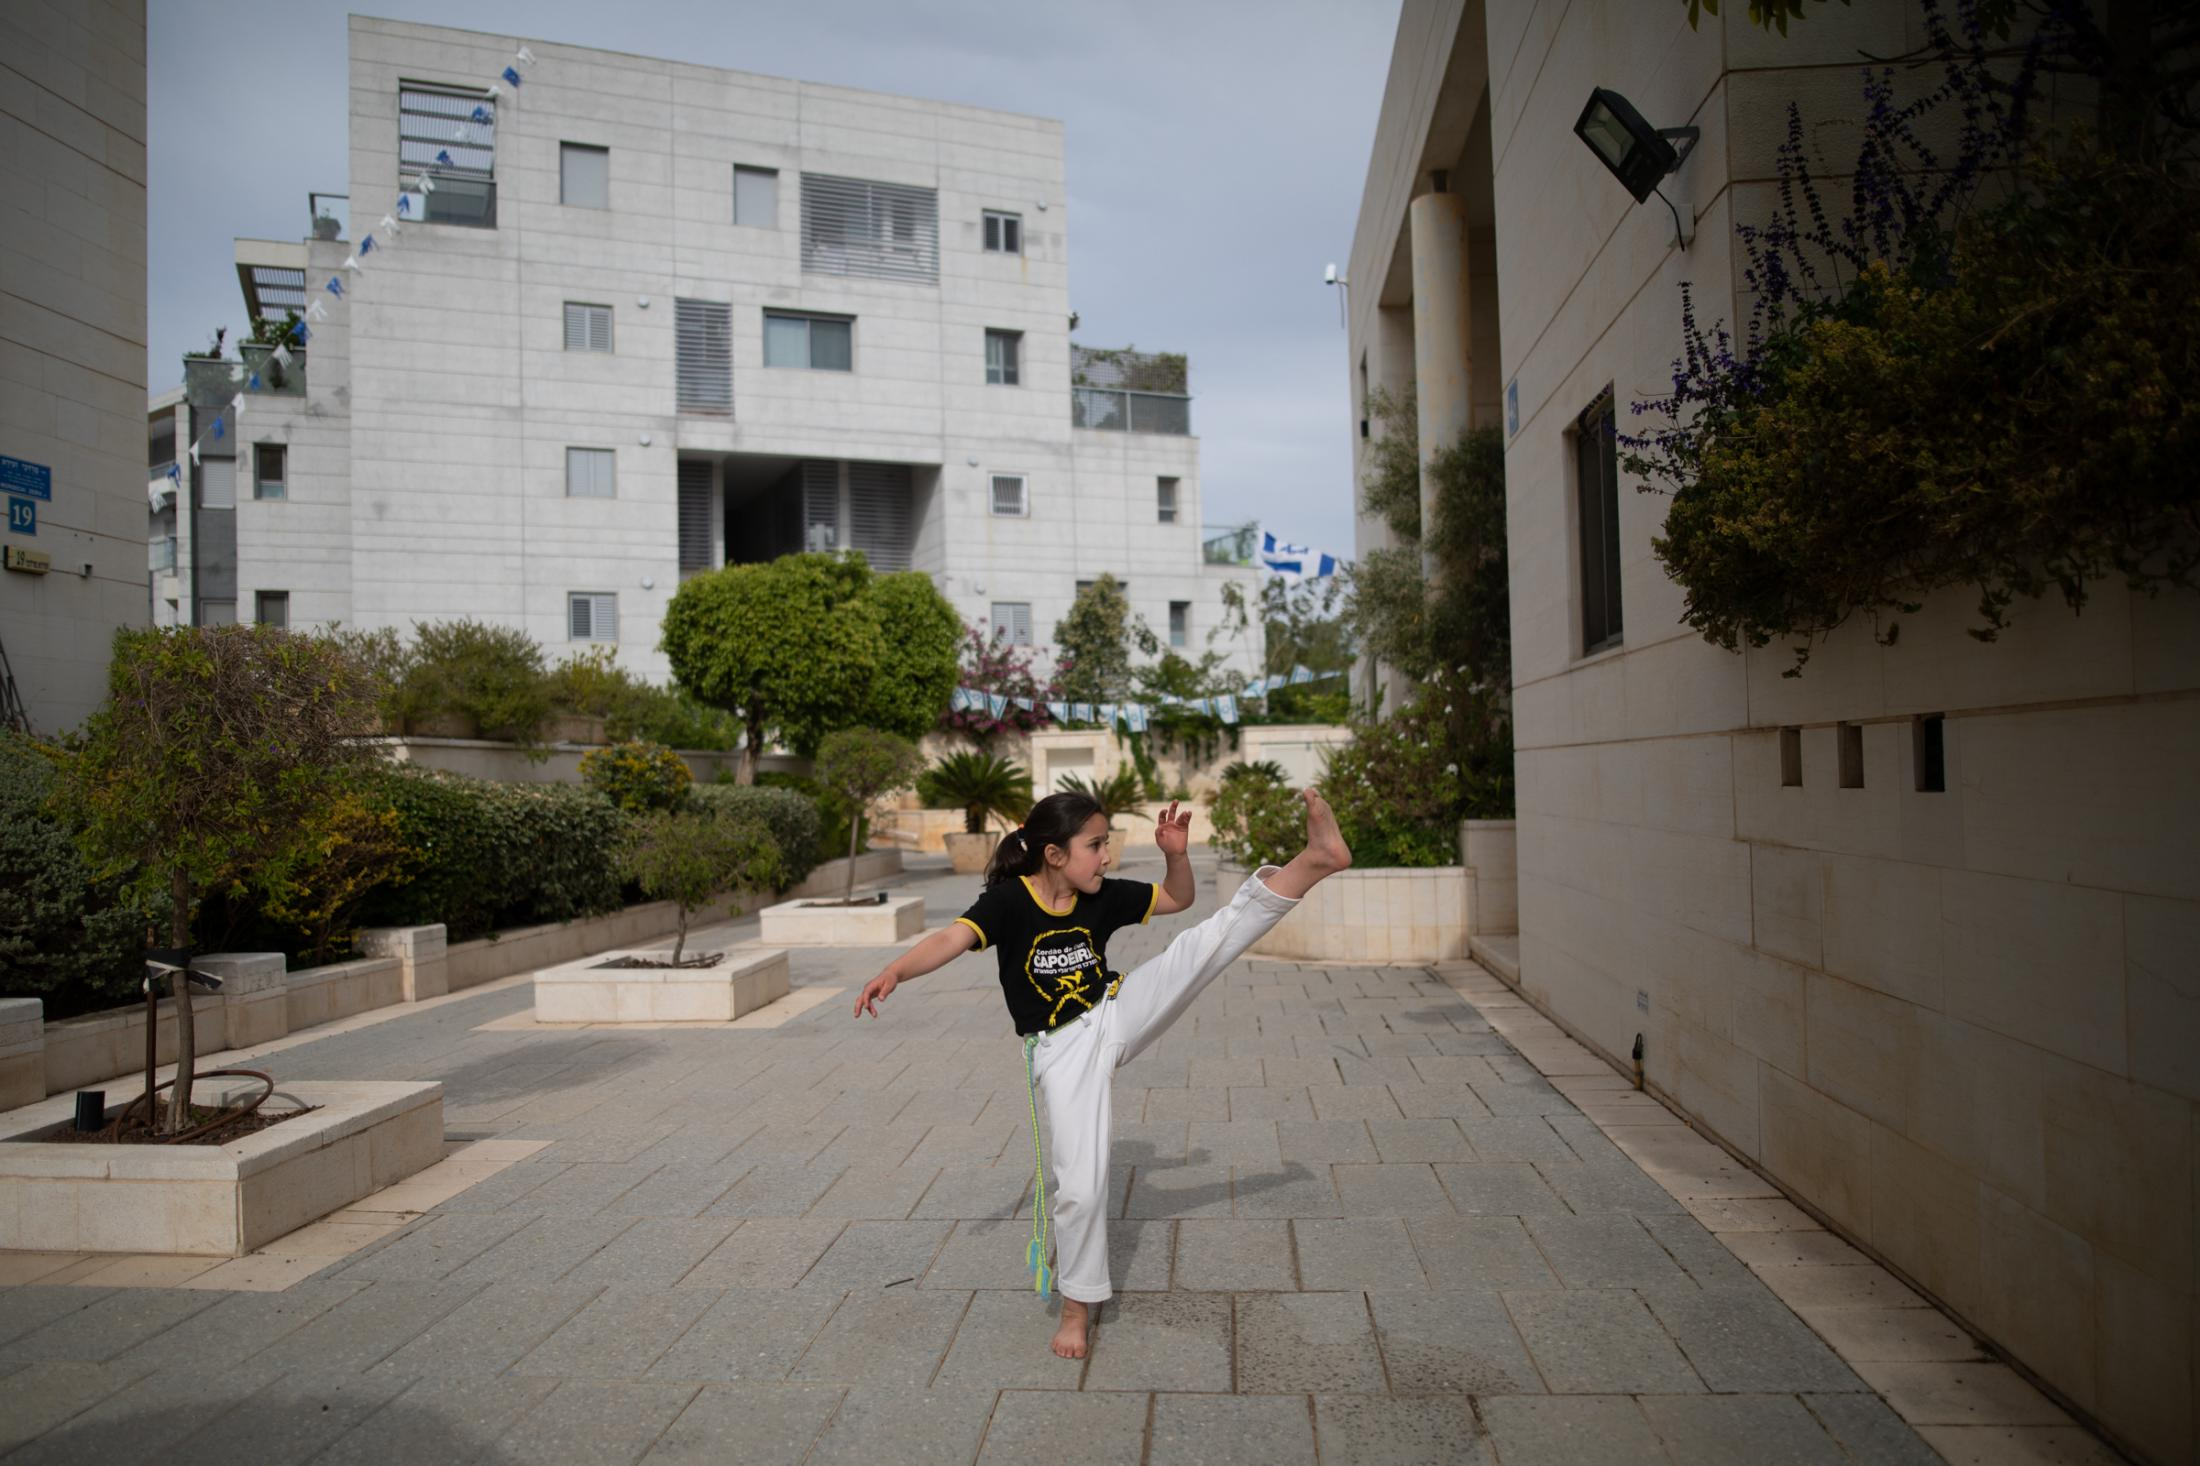 """Gaya Jacobs, 7, takes an online Capoeira class via Zoom on her phone, which she adjusted to the wall in front of her home in Tel Aviv, Israel, April 27, 2020. """"It feels weird to me because I am together with all my friends all the time and I see the teacher and I train in the studio, and one day they are telling me 'You cannot train here anymore, from now on you are training at home'. That wasn't nice, that wasn't fun, but I am dealing with it. It's not so bad."""""""